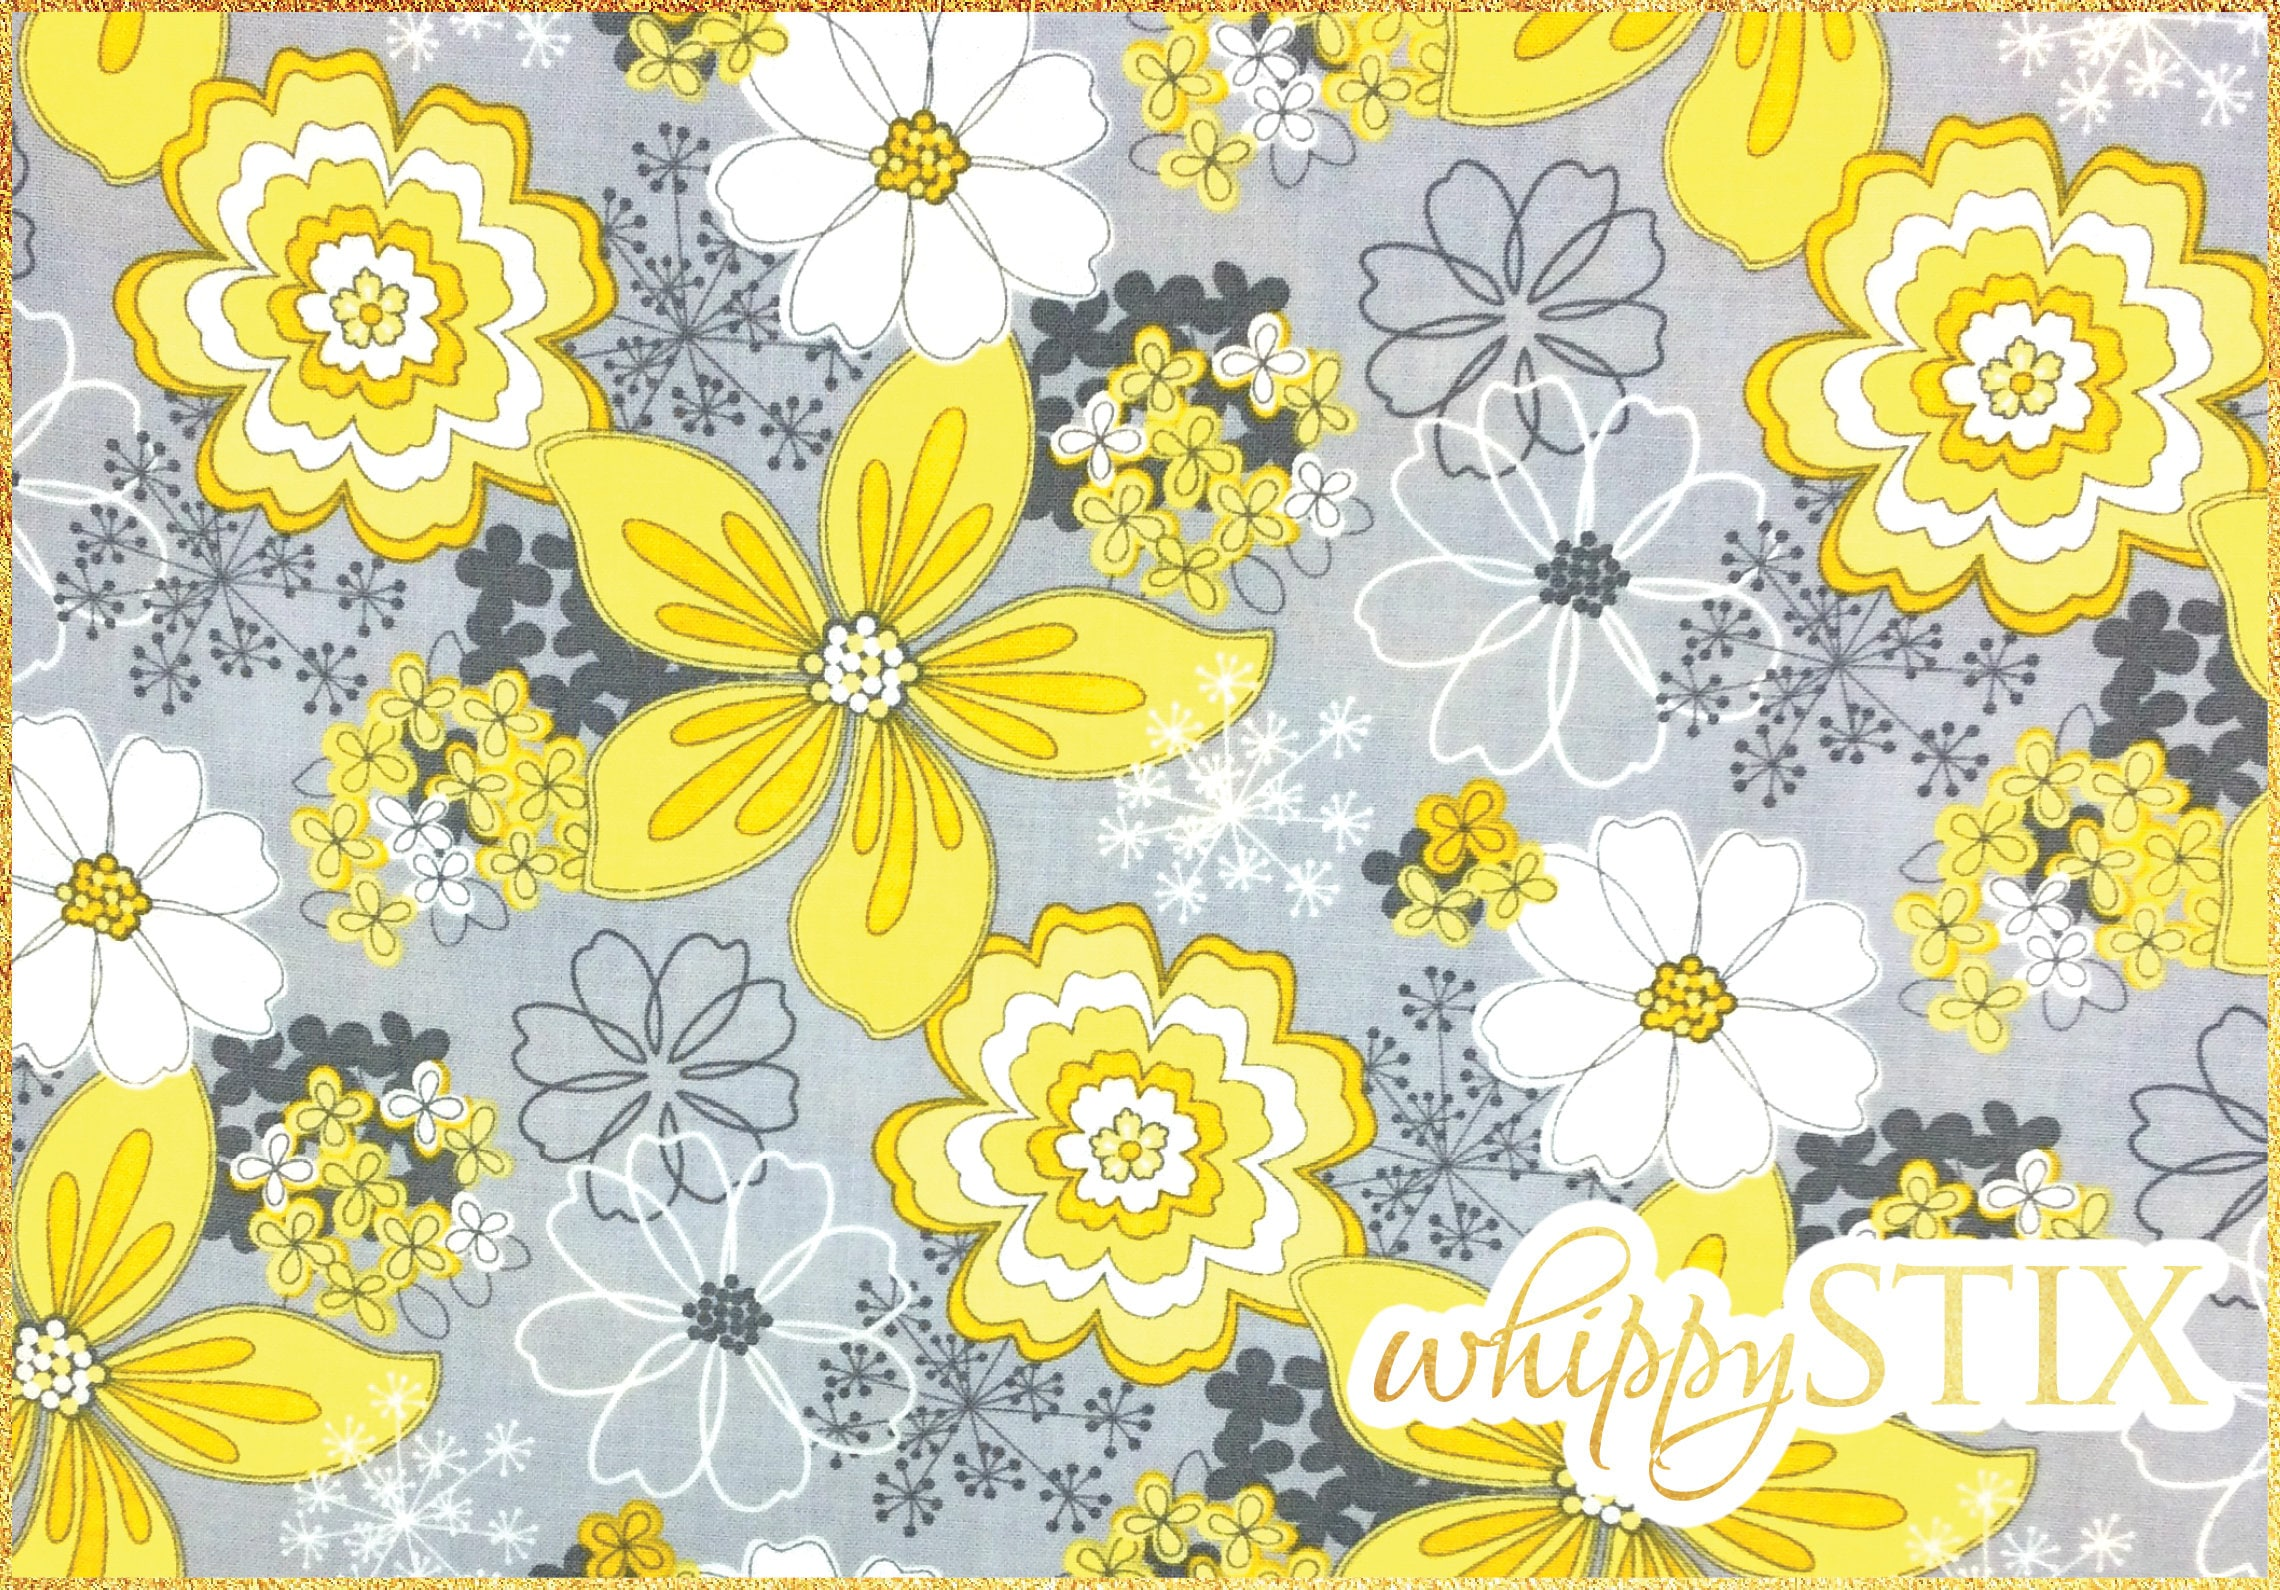 Last one floral fabric 1 yard gray matters jackie studios camelot last one floral fabric 1 yard gray matters jackie studios camelot fabrics 4140401 yellow grey flowers cotton quilting material mightylinksfo